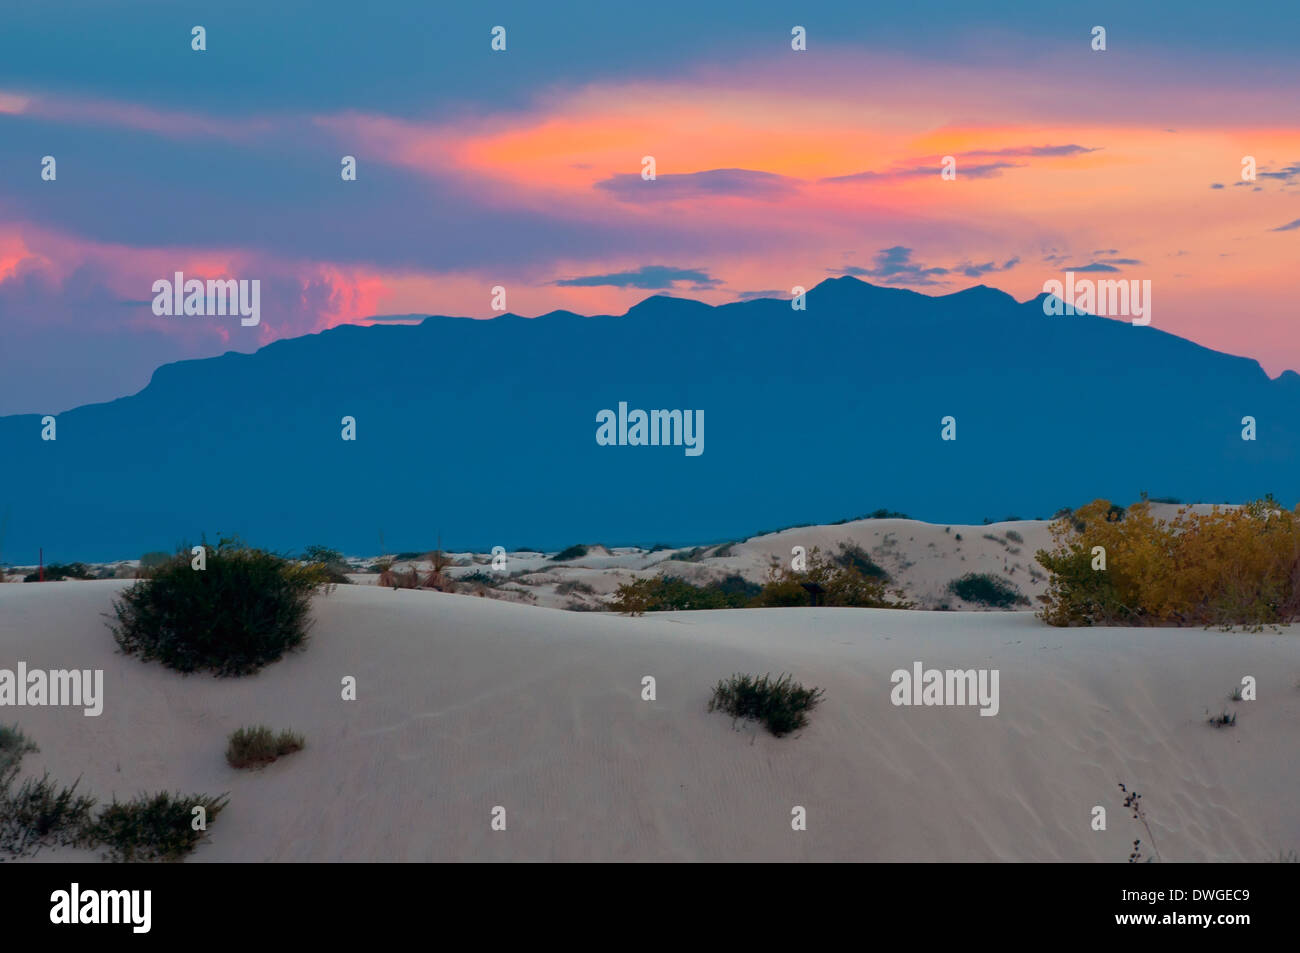 White Sands National Monument at sunset - Stock Image